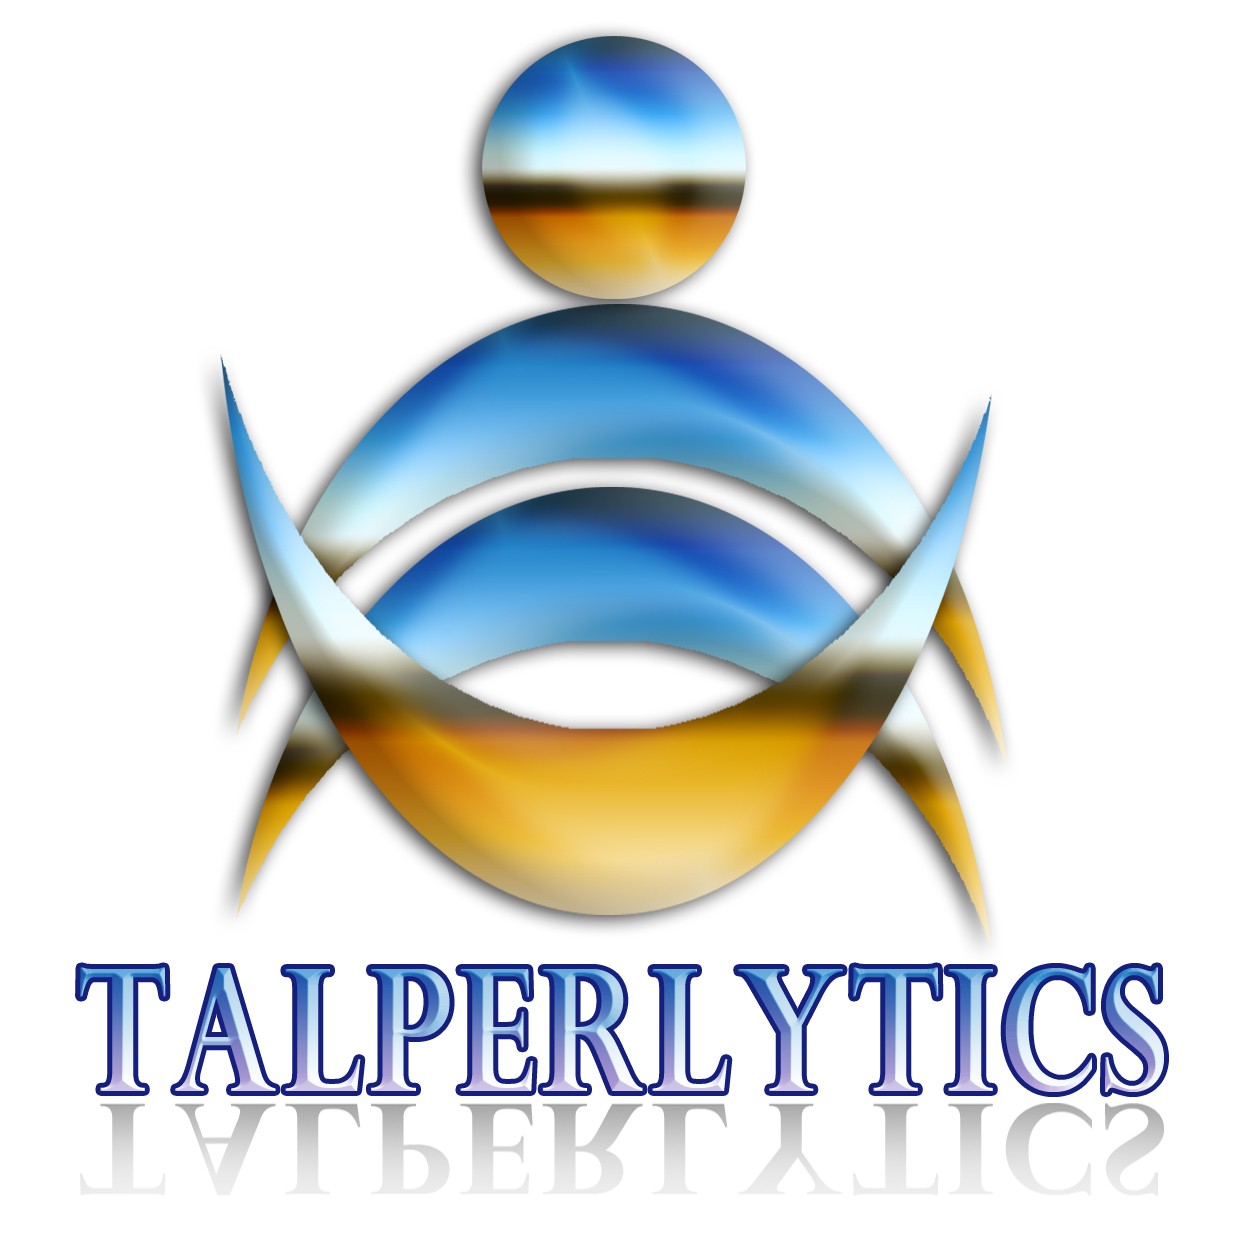 Logo Design by Kitz Malinao - Entry No. 10 in the Logo Design Contest Imaginative Logo Design for Talperlytics.